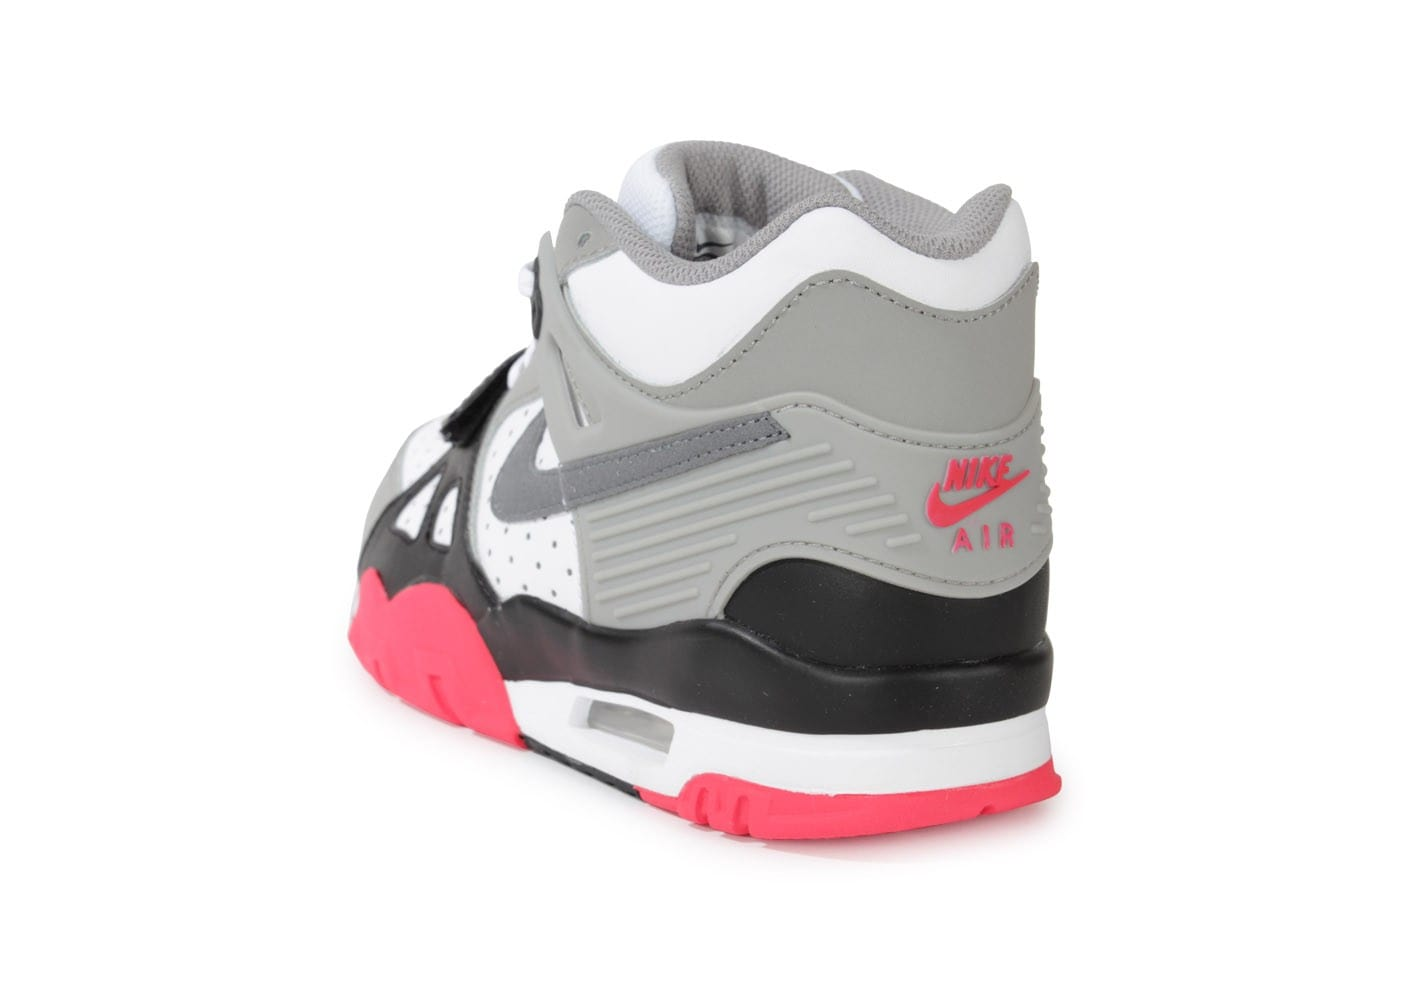 Nike Air Trainer 3 Junior Blanche Et Grise Chaussures